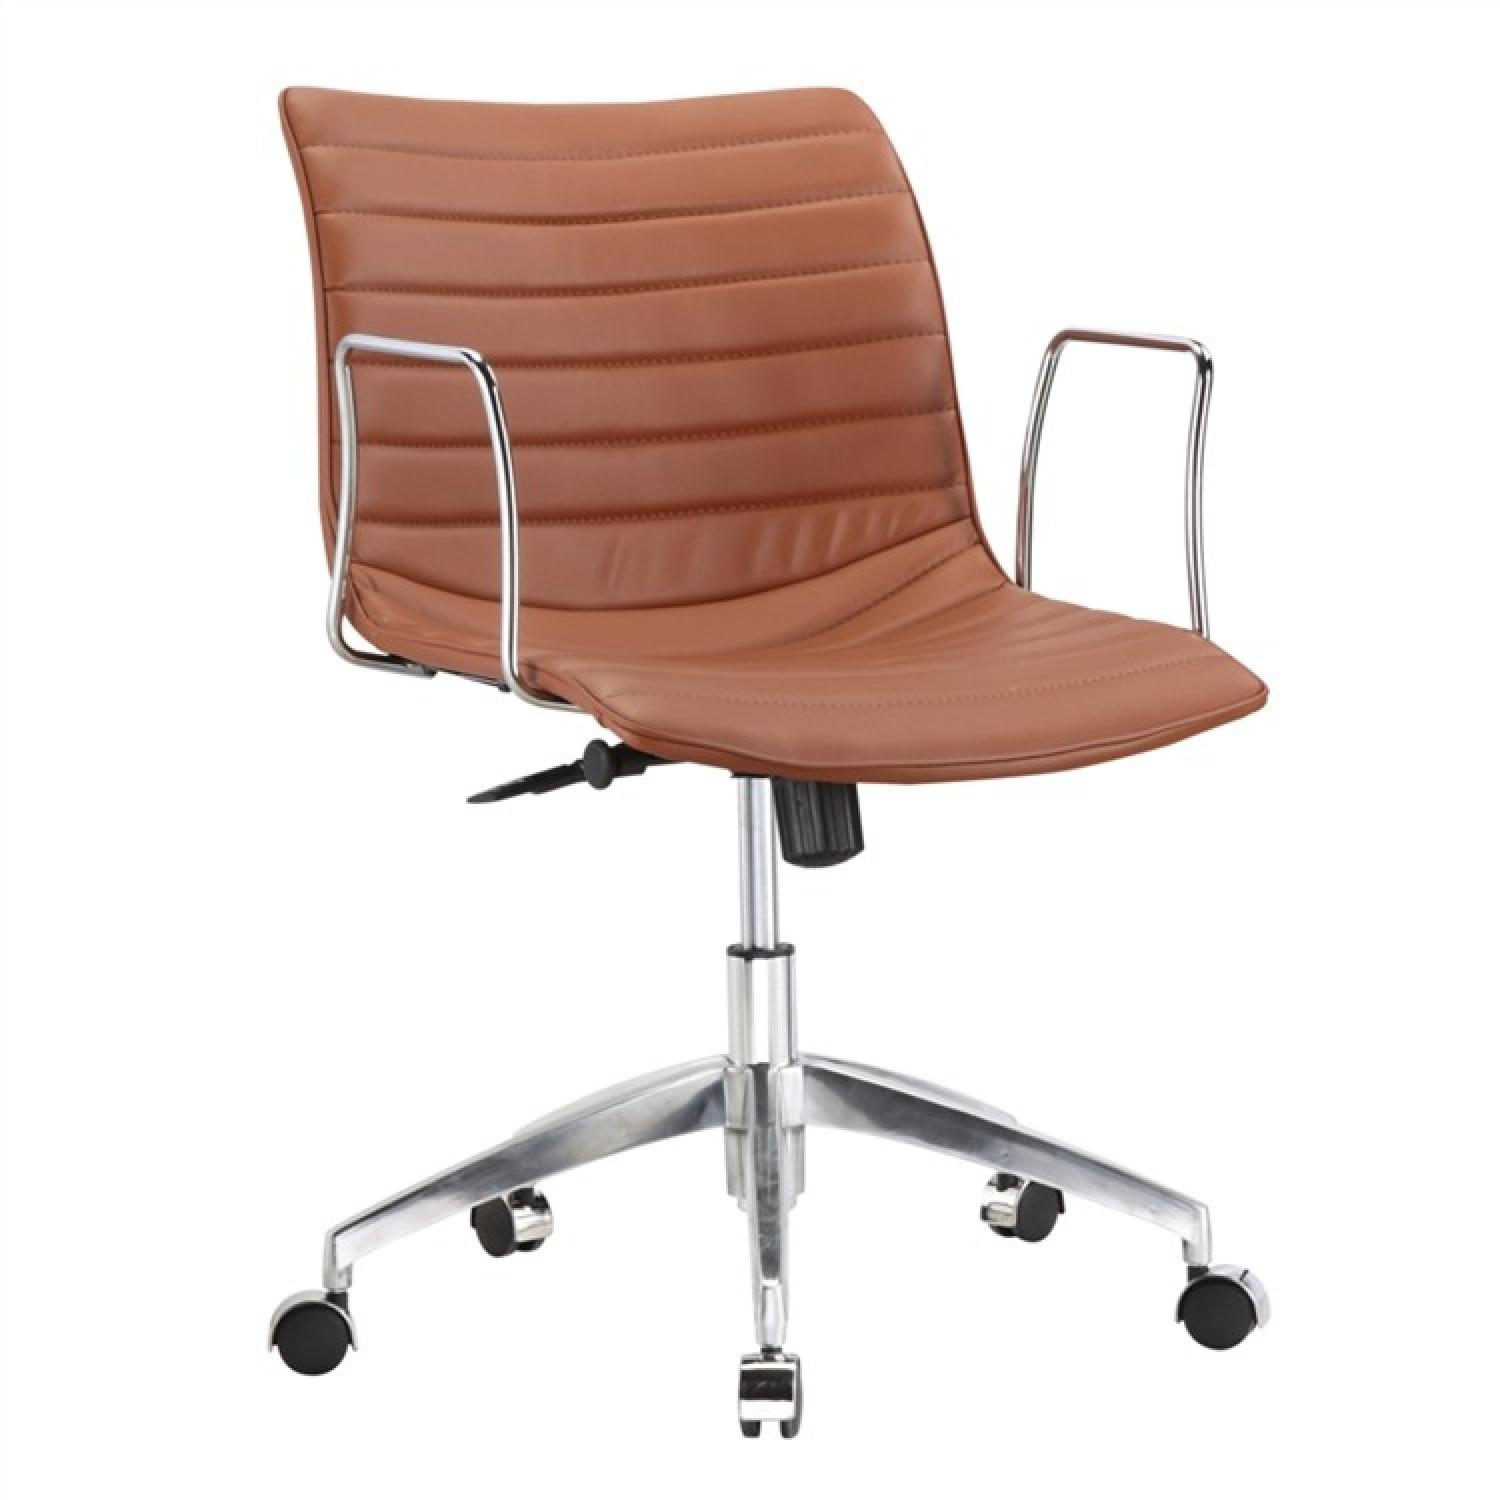 Contemporary Office Chairs Modern Mid Back Office Chair W Chrome Arms And Light Aptdeco